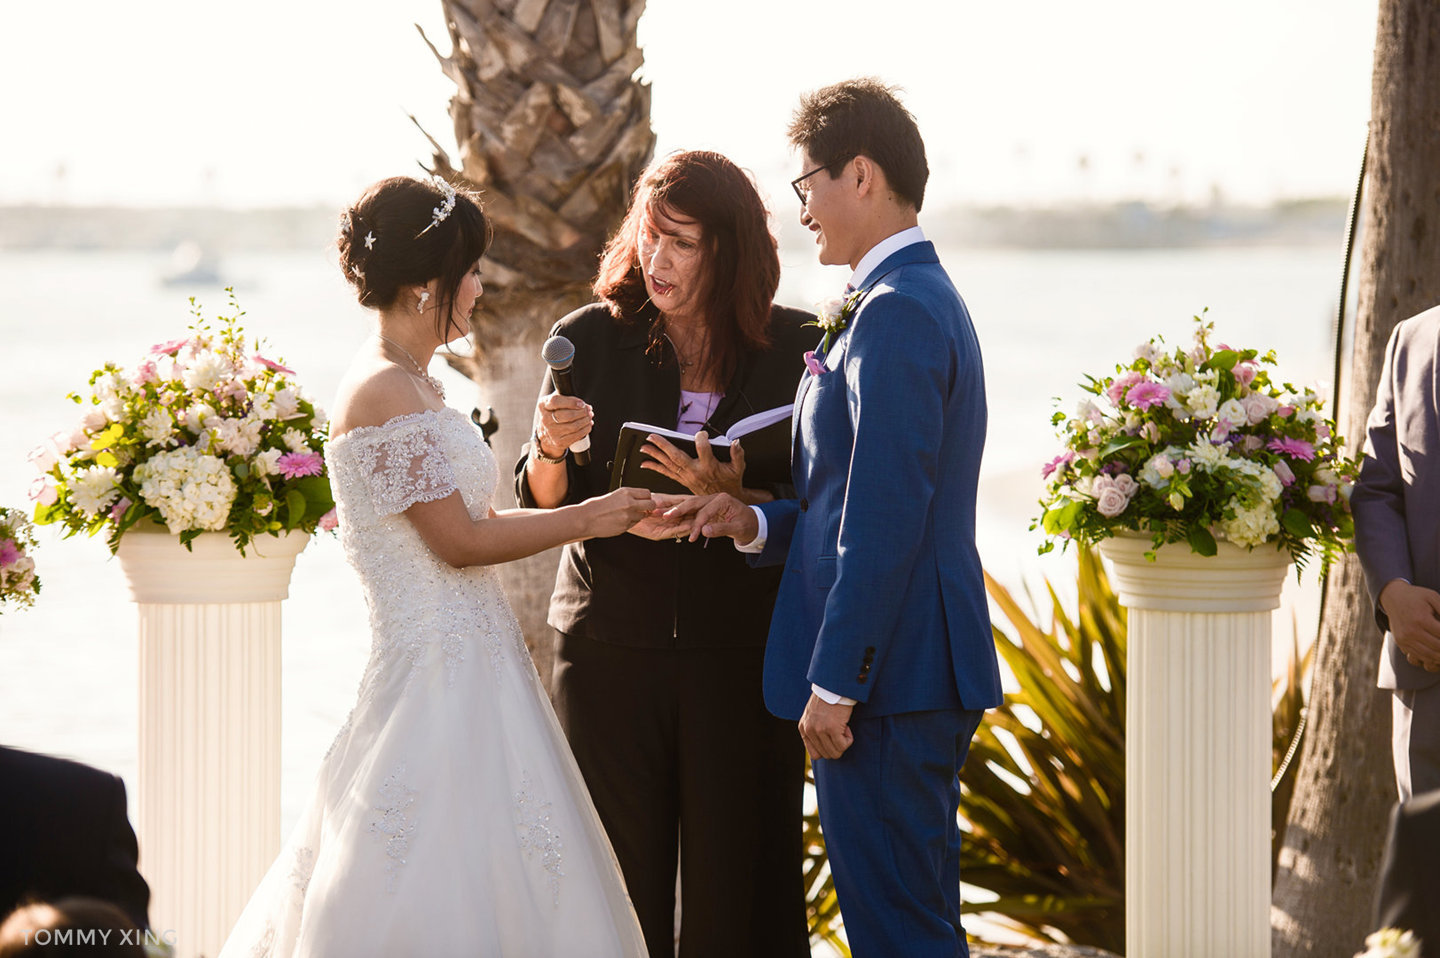 Paradise Point Resort Wedding Xiaolu & Bin San Diego 圣地亚哥婚礼摄影跟拍 Tommy Xing Photography 洛杉矶婚礼婚纱照摄影师 157.jpg